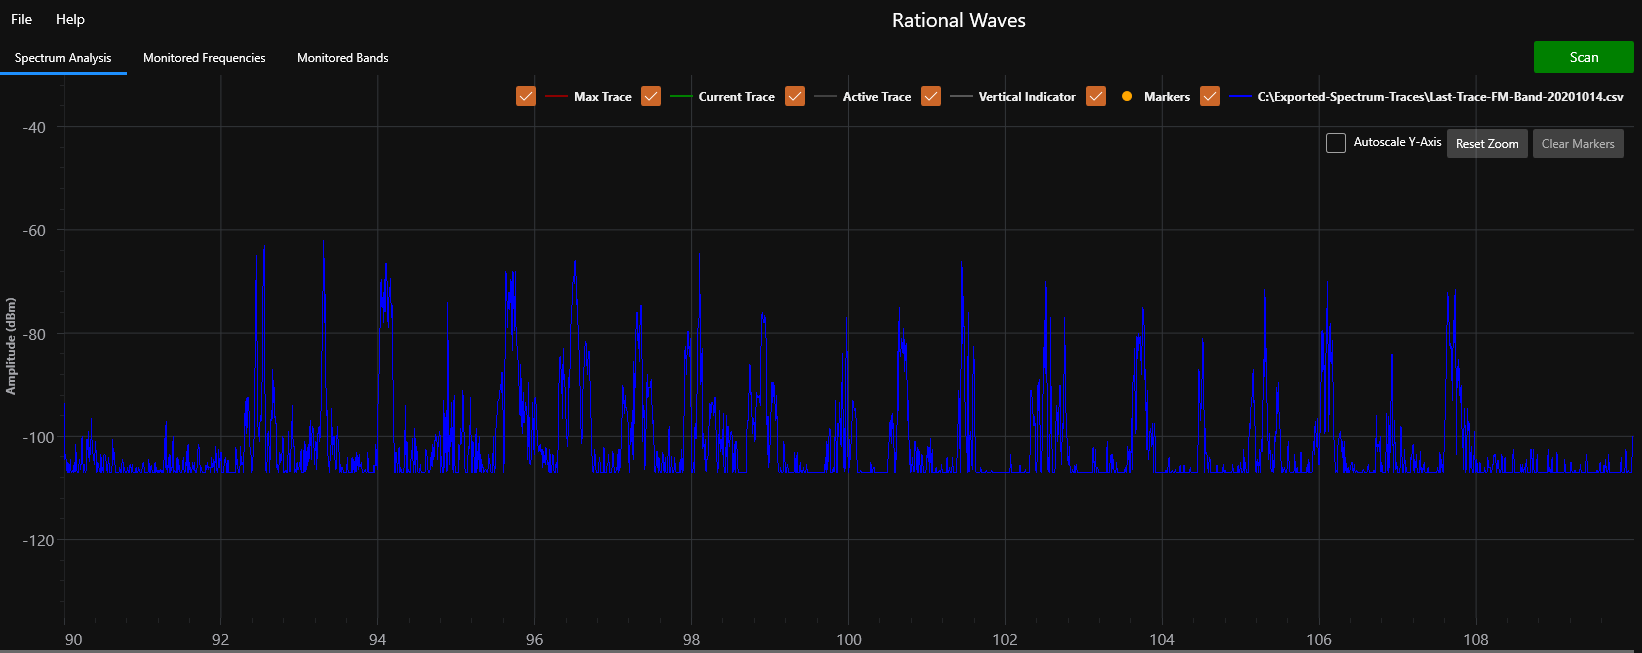 Rational Waves RF Spectrum Analysis Software